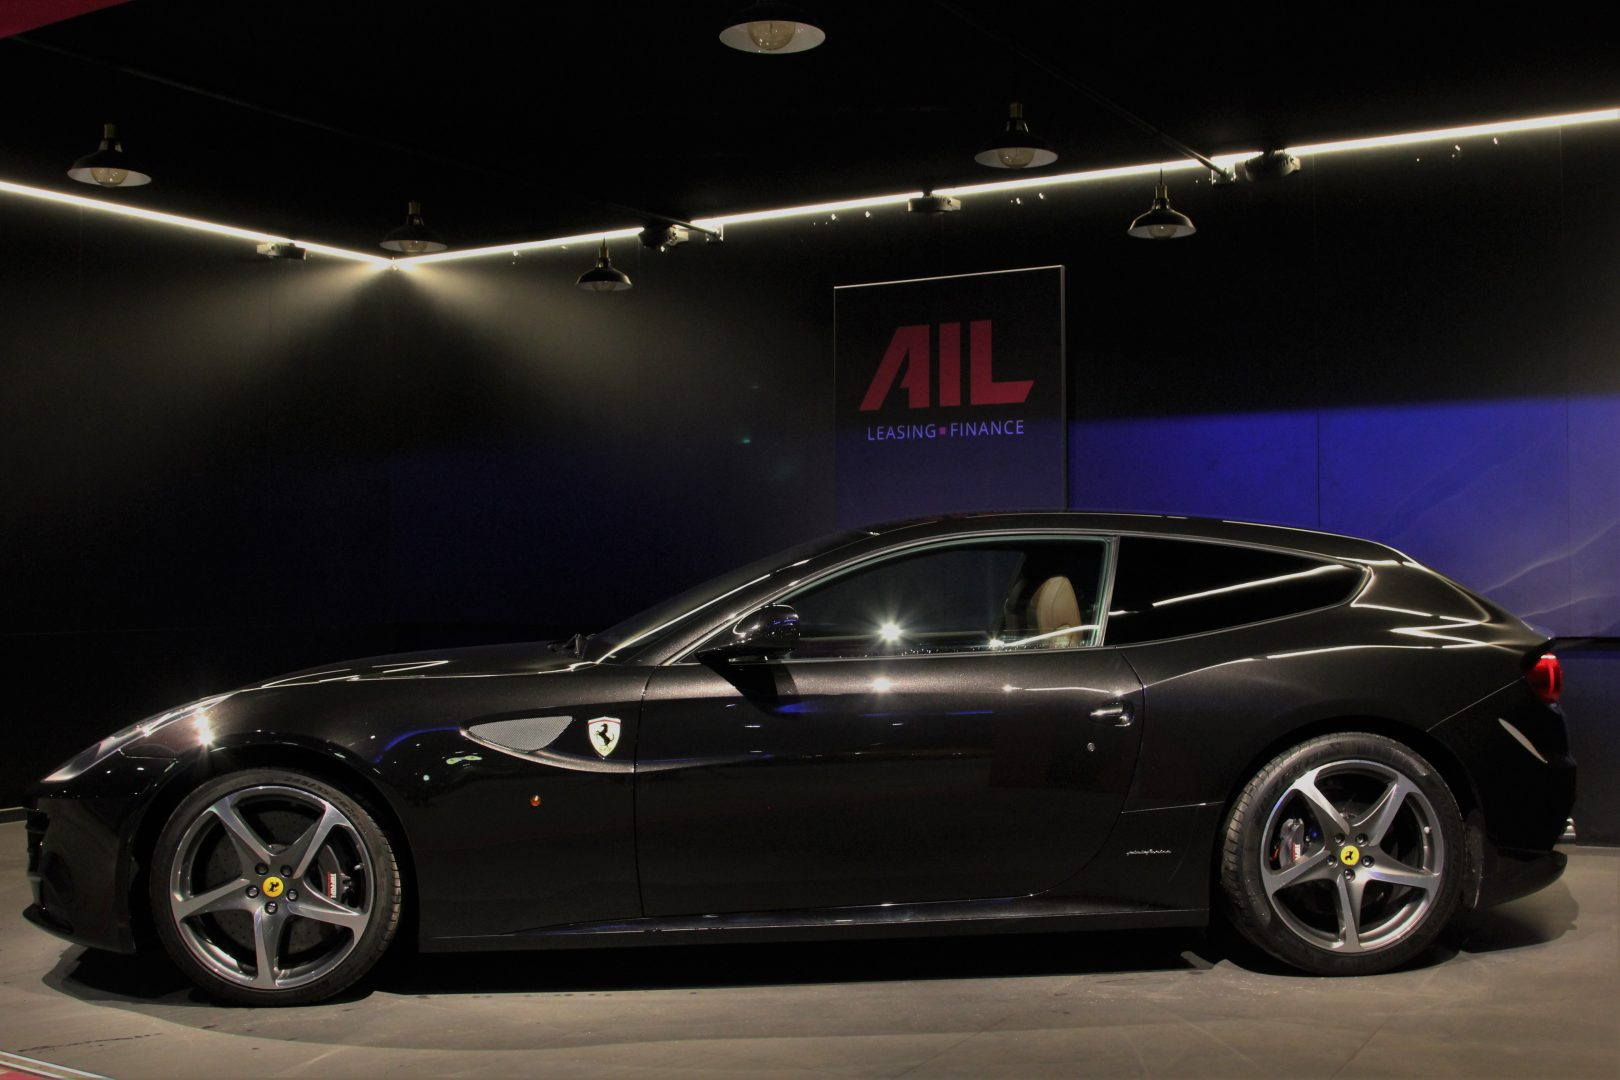 AIL Ferrari FF V12 Carbon Ceramic Brake 6